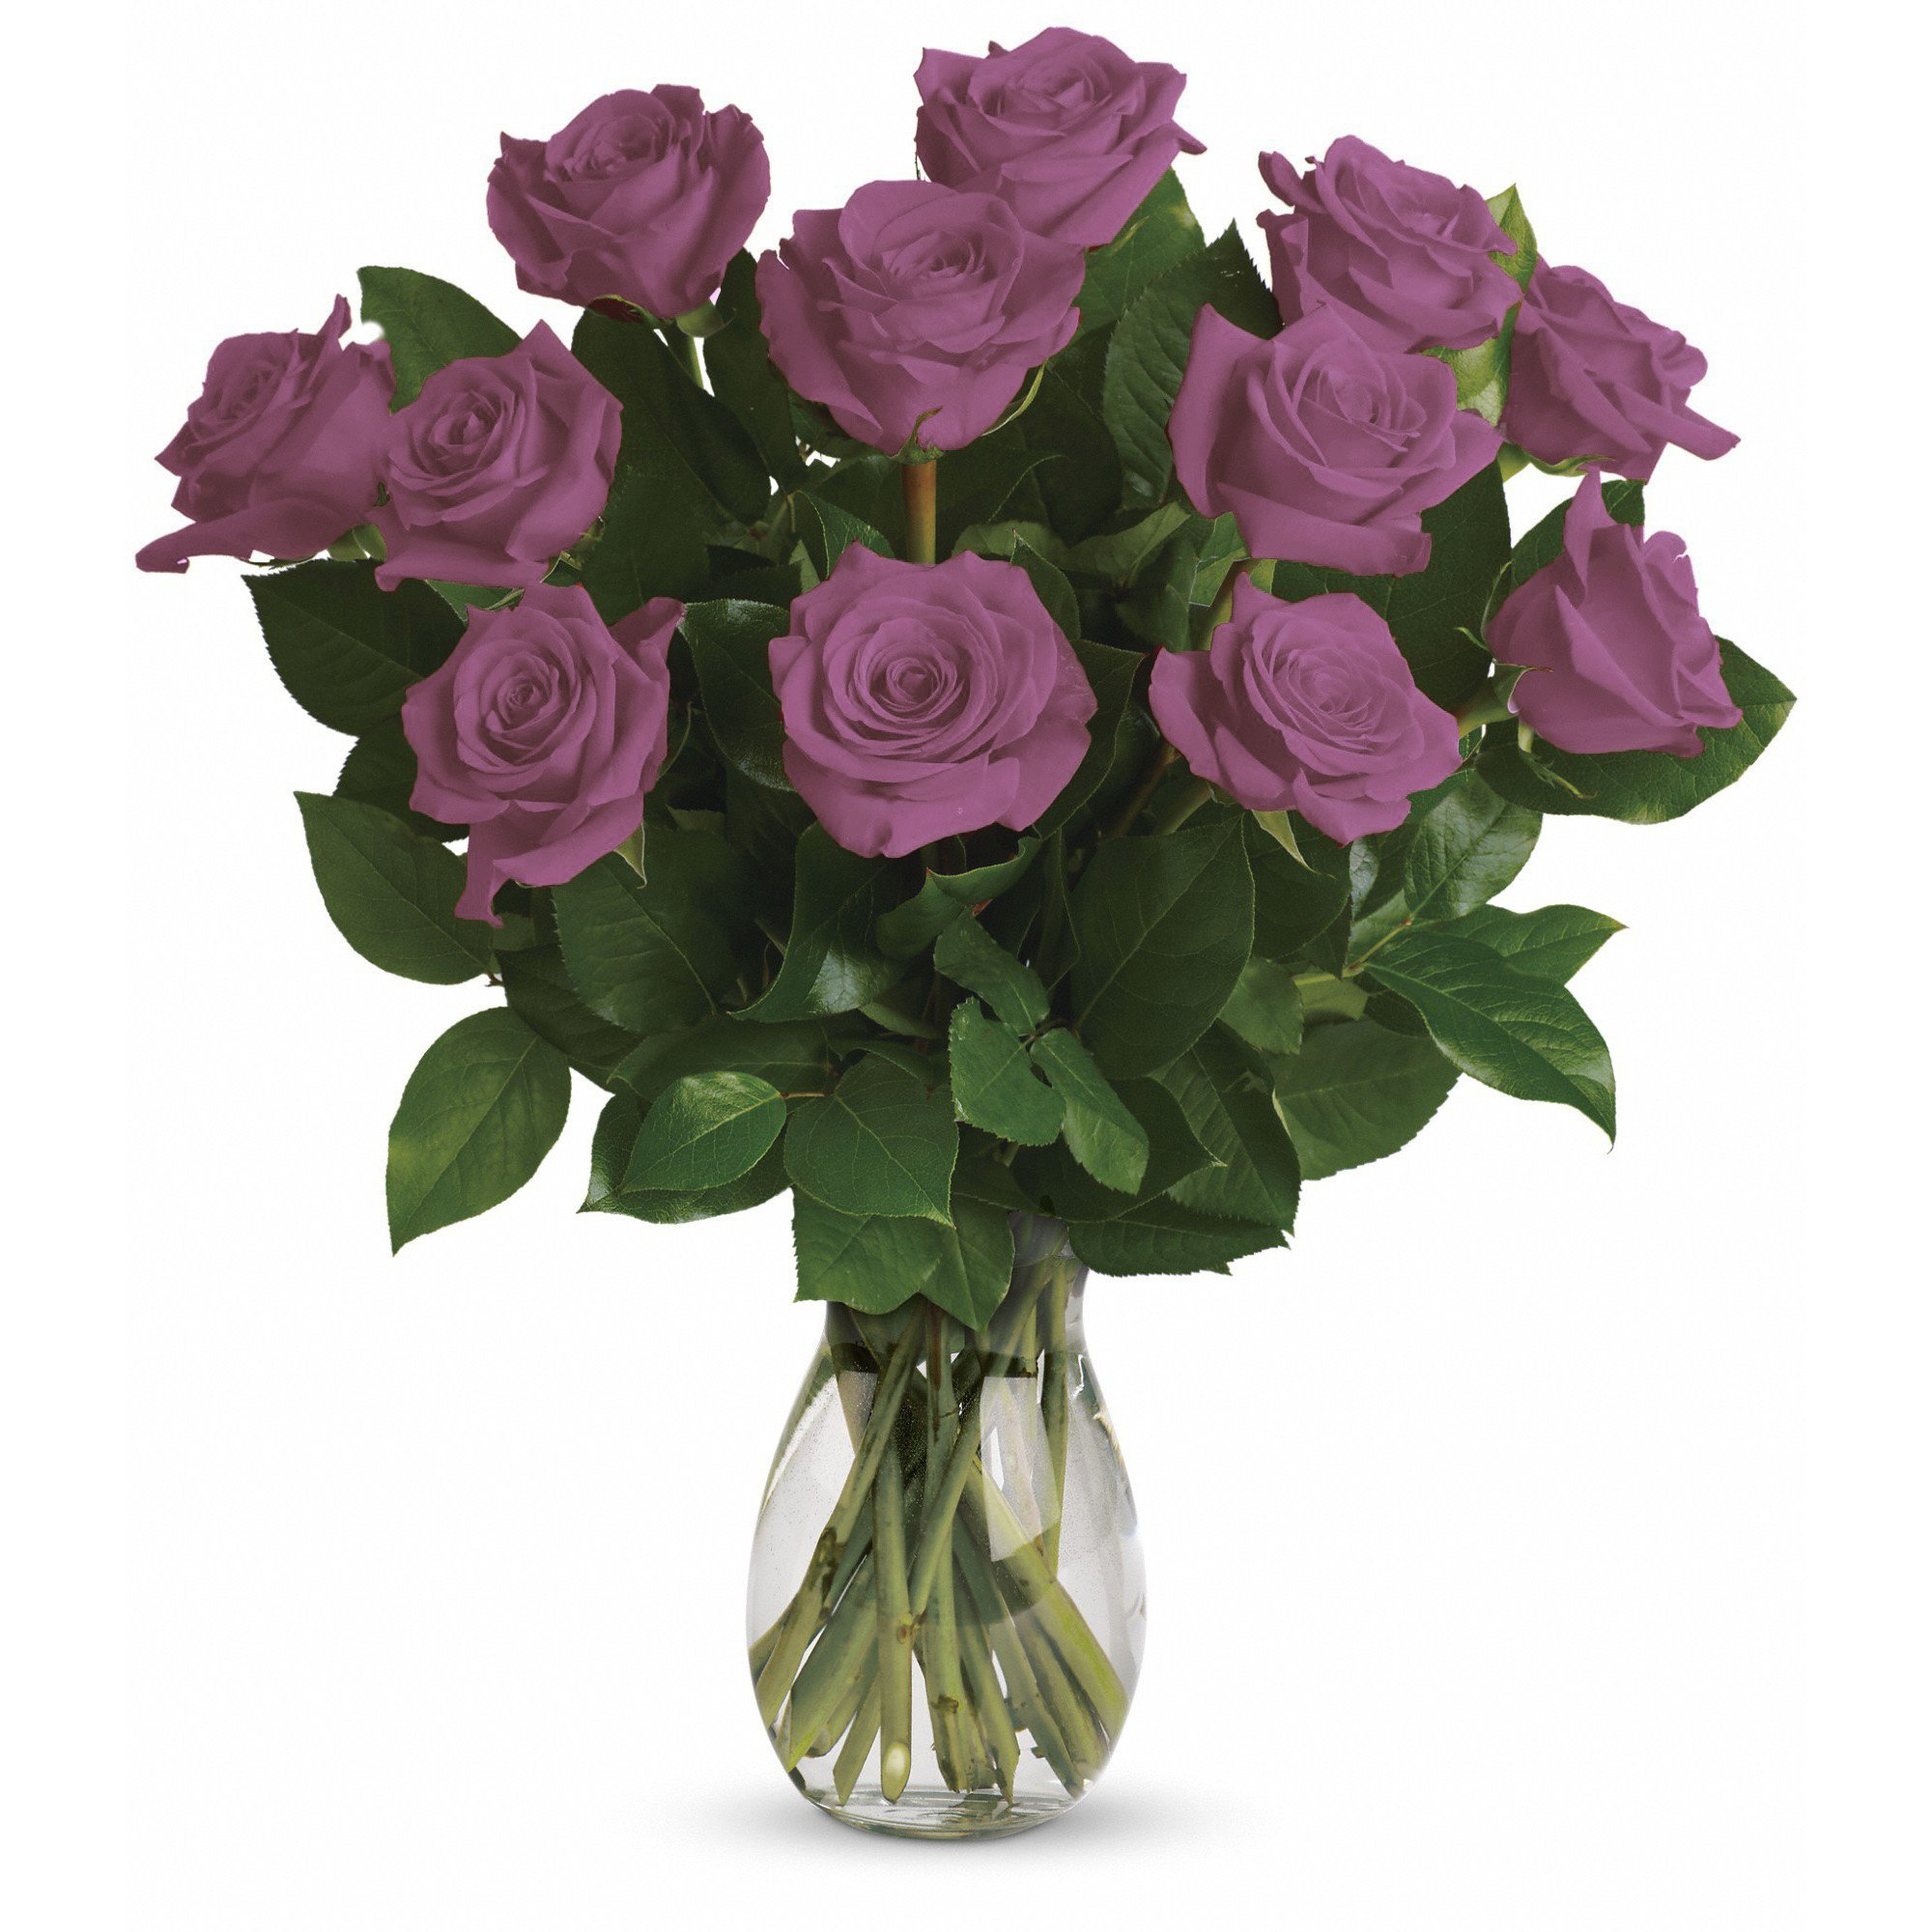 Farm Direct Rose Bouquet of 12 Fresh Cut Roses with Vase (Lavender)